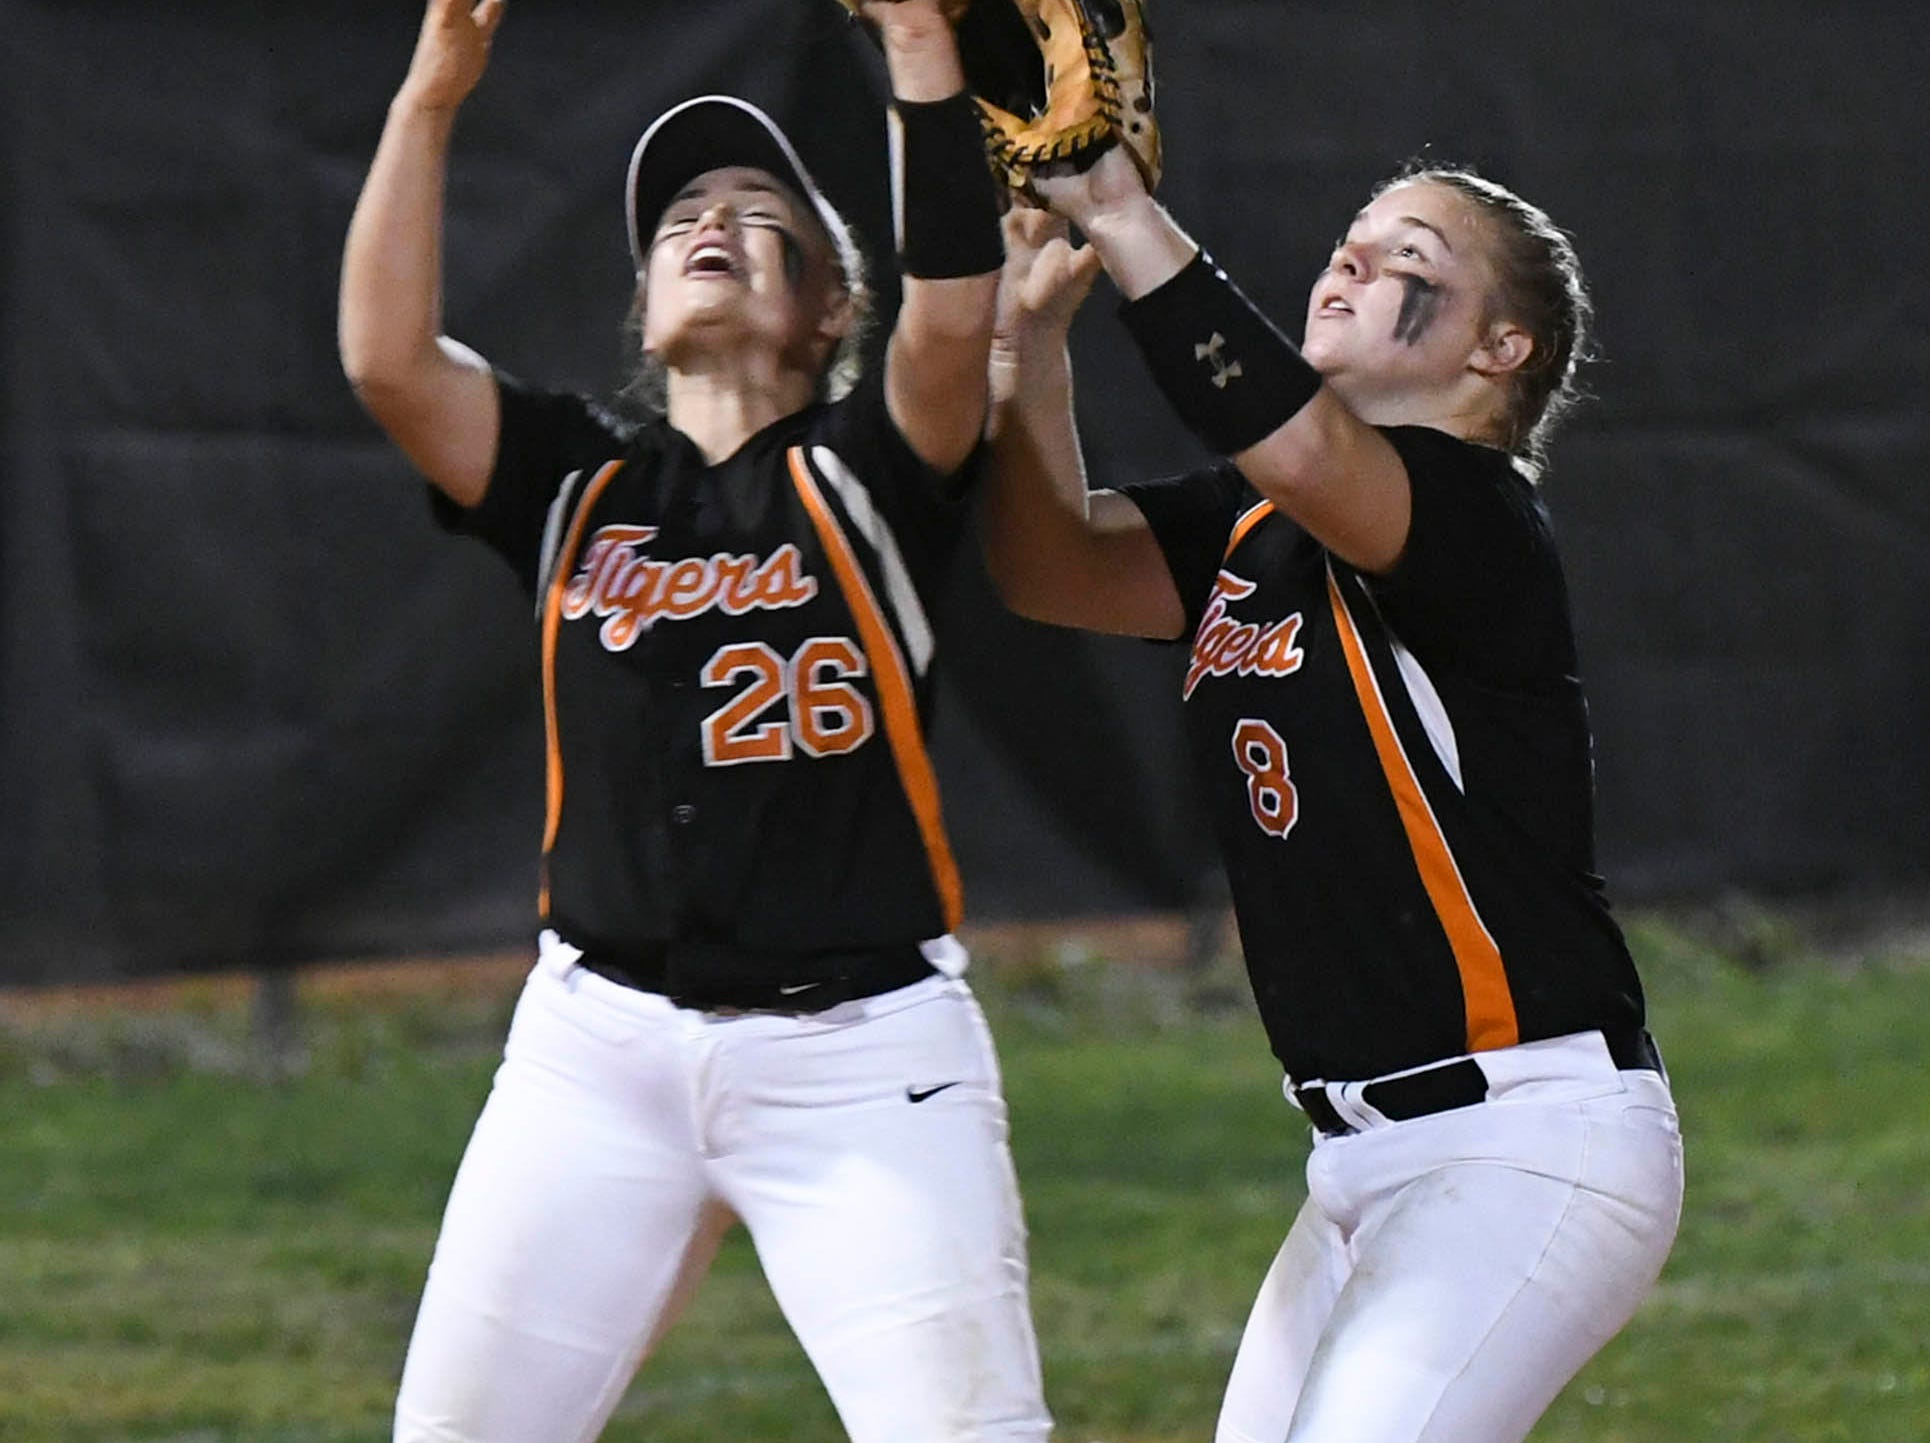 Cocoa's All Clemens and Mackenzie Hoffman go for a fly ball during Friday's game against Cocoa.